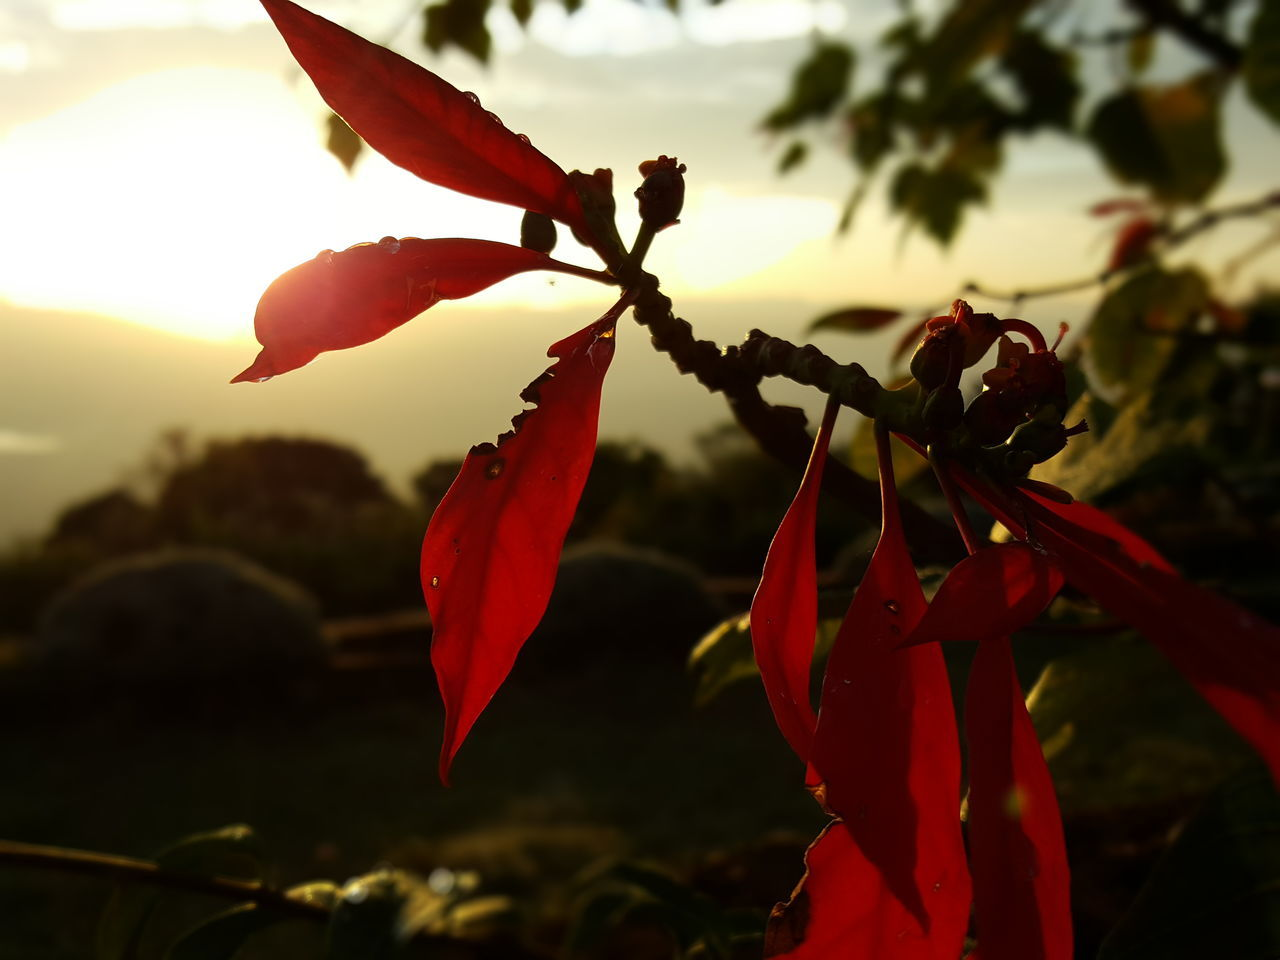 Red Close-up Sunlight Plant Outdoors Sunset Nature Beauty In Nature No People Day Sunrise Tree Morning Sky Morning Light Morning Sun Morning View Morning Mood Kenya